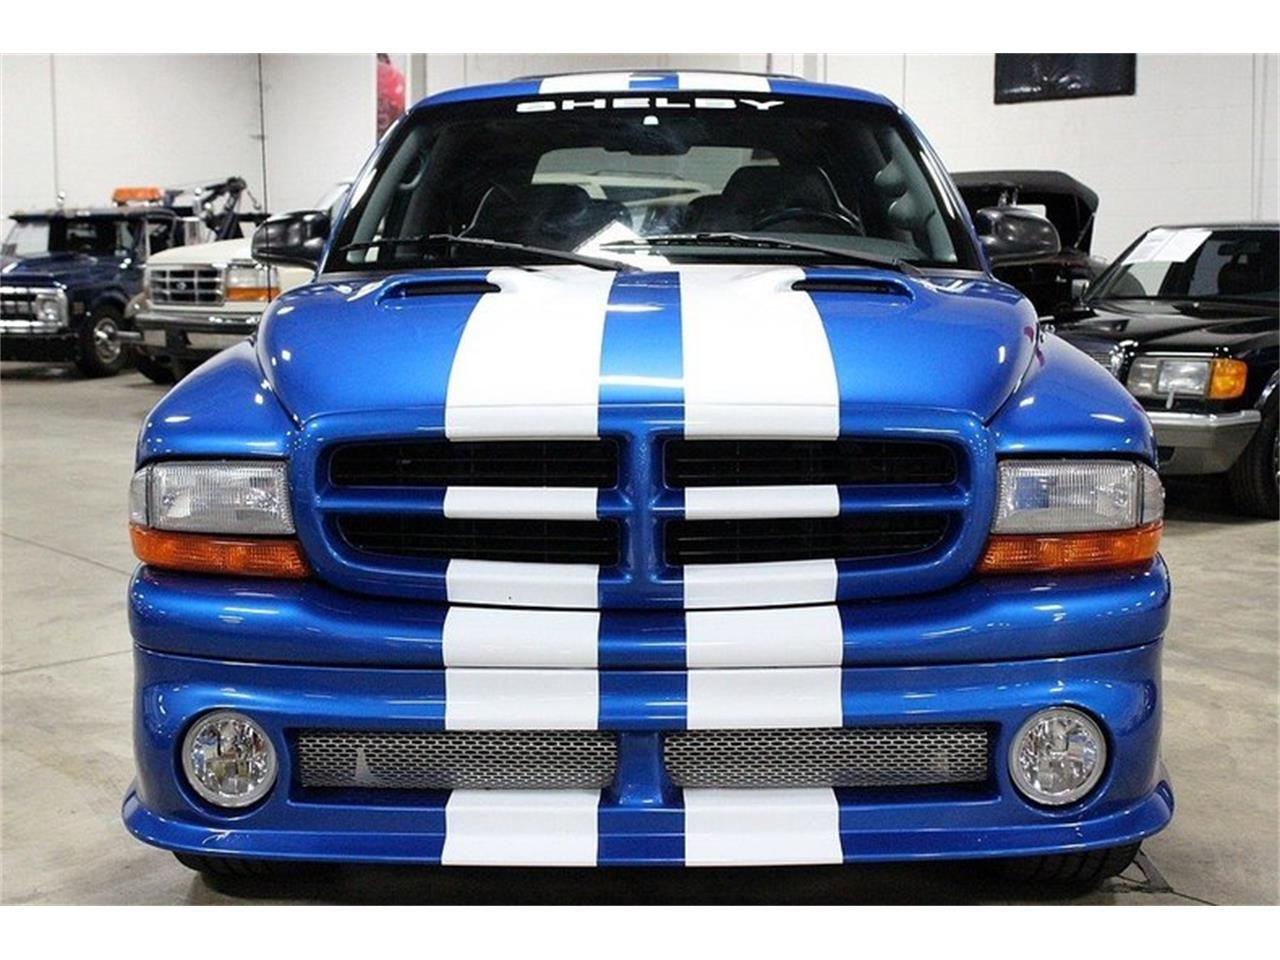 Large Picture of '99 Durango Shelby SP-360 located in Michigan Offered by GR Auto Gallery - MB1Y